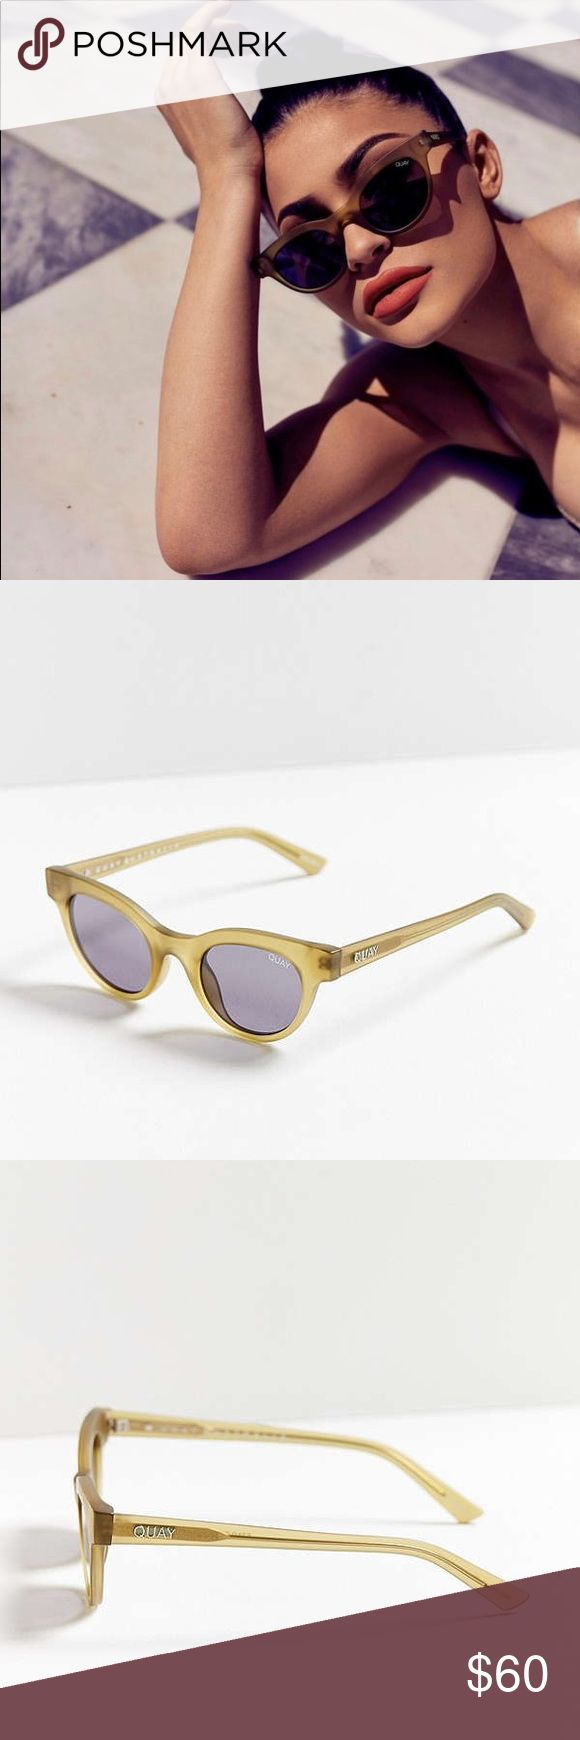 NEW! Kylie Jenner x Quay Australia sunglasses Brand new starstruck sunglasses from this brand new collection. Comes with original case. Looks exactly like images. Never been worn at all. Additional info in images. QUAYXKYLIE Accessories Sunglasses